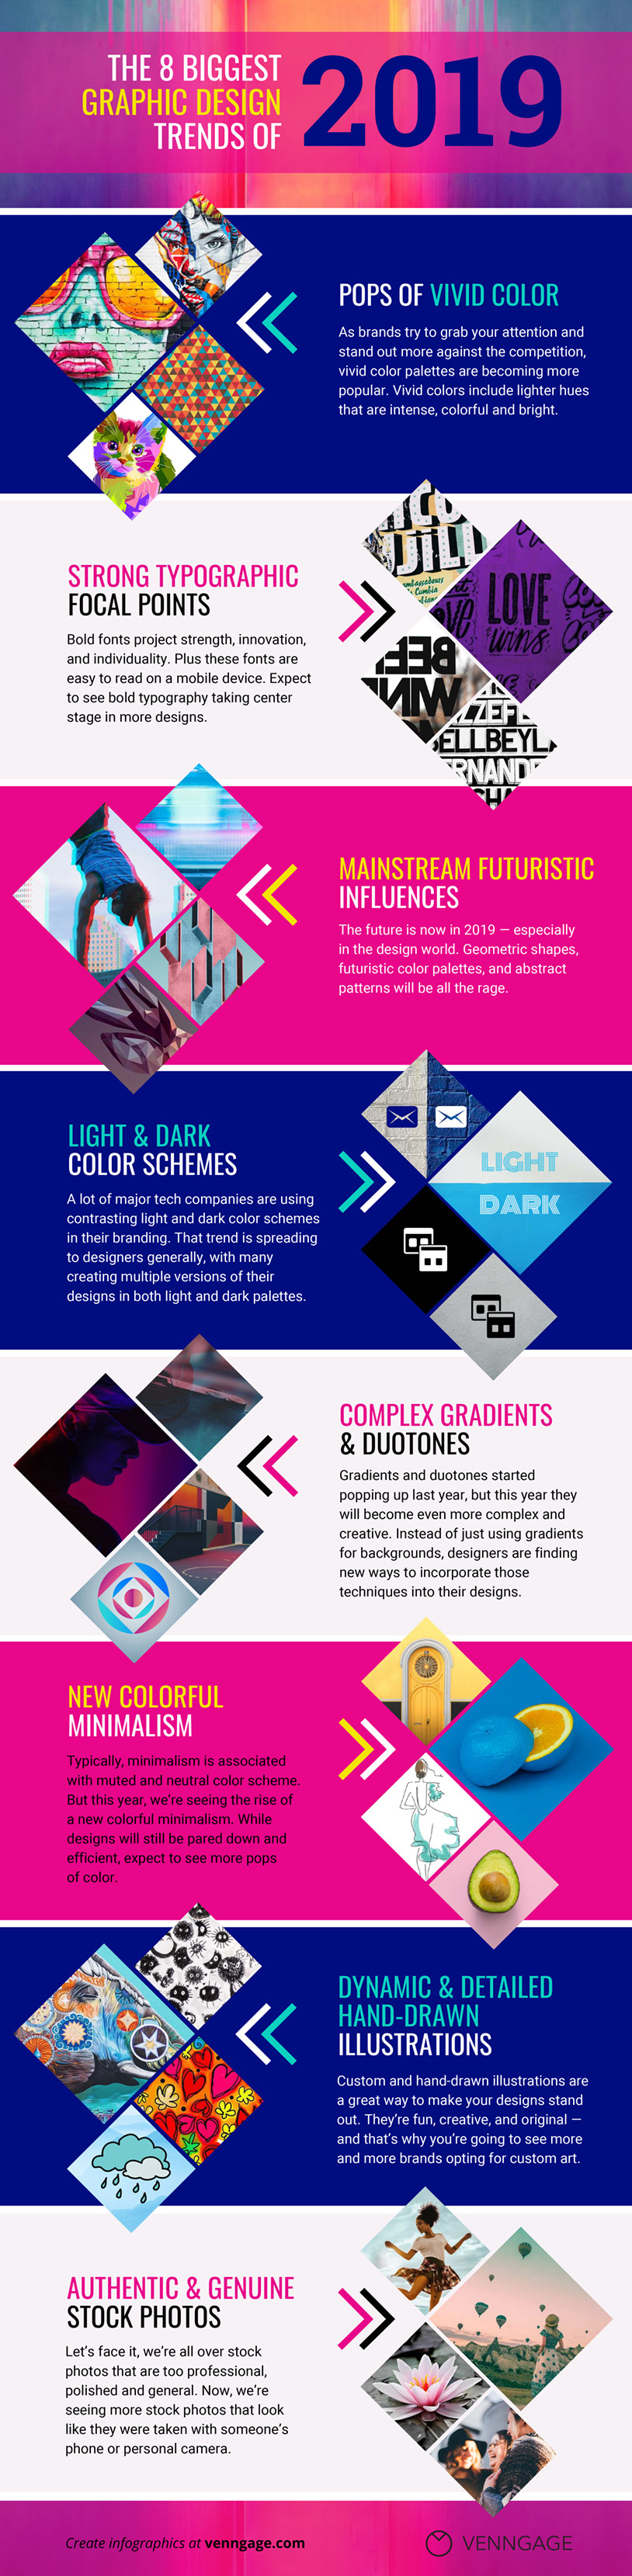 Infographic Trends In Special Education >> The 8 Biggest Graphic Design Trends That Will Dominate 2019